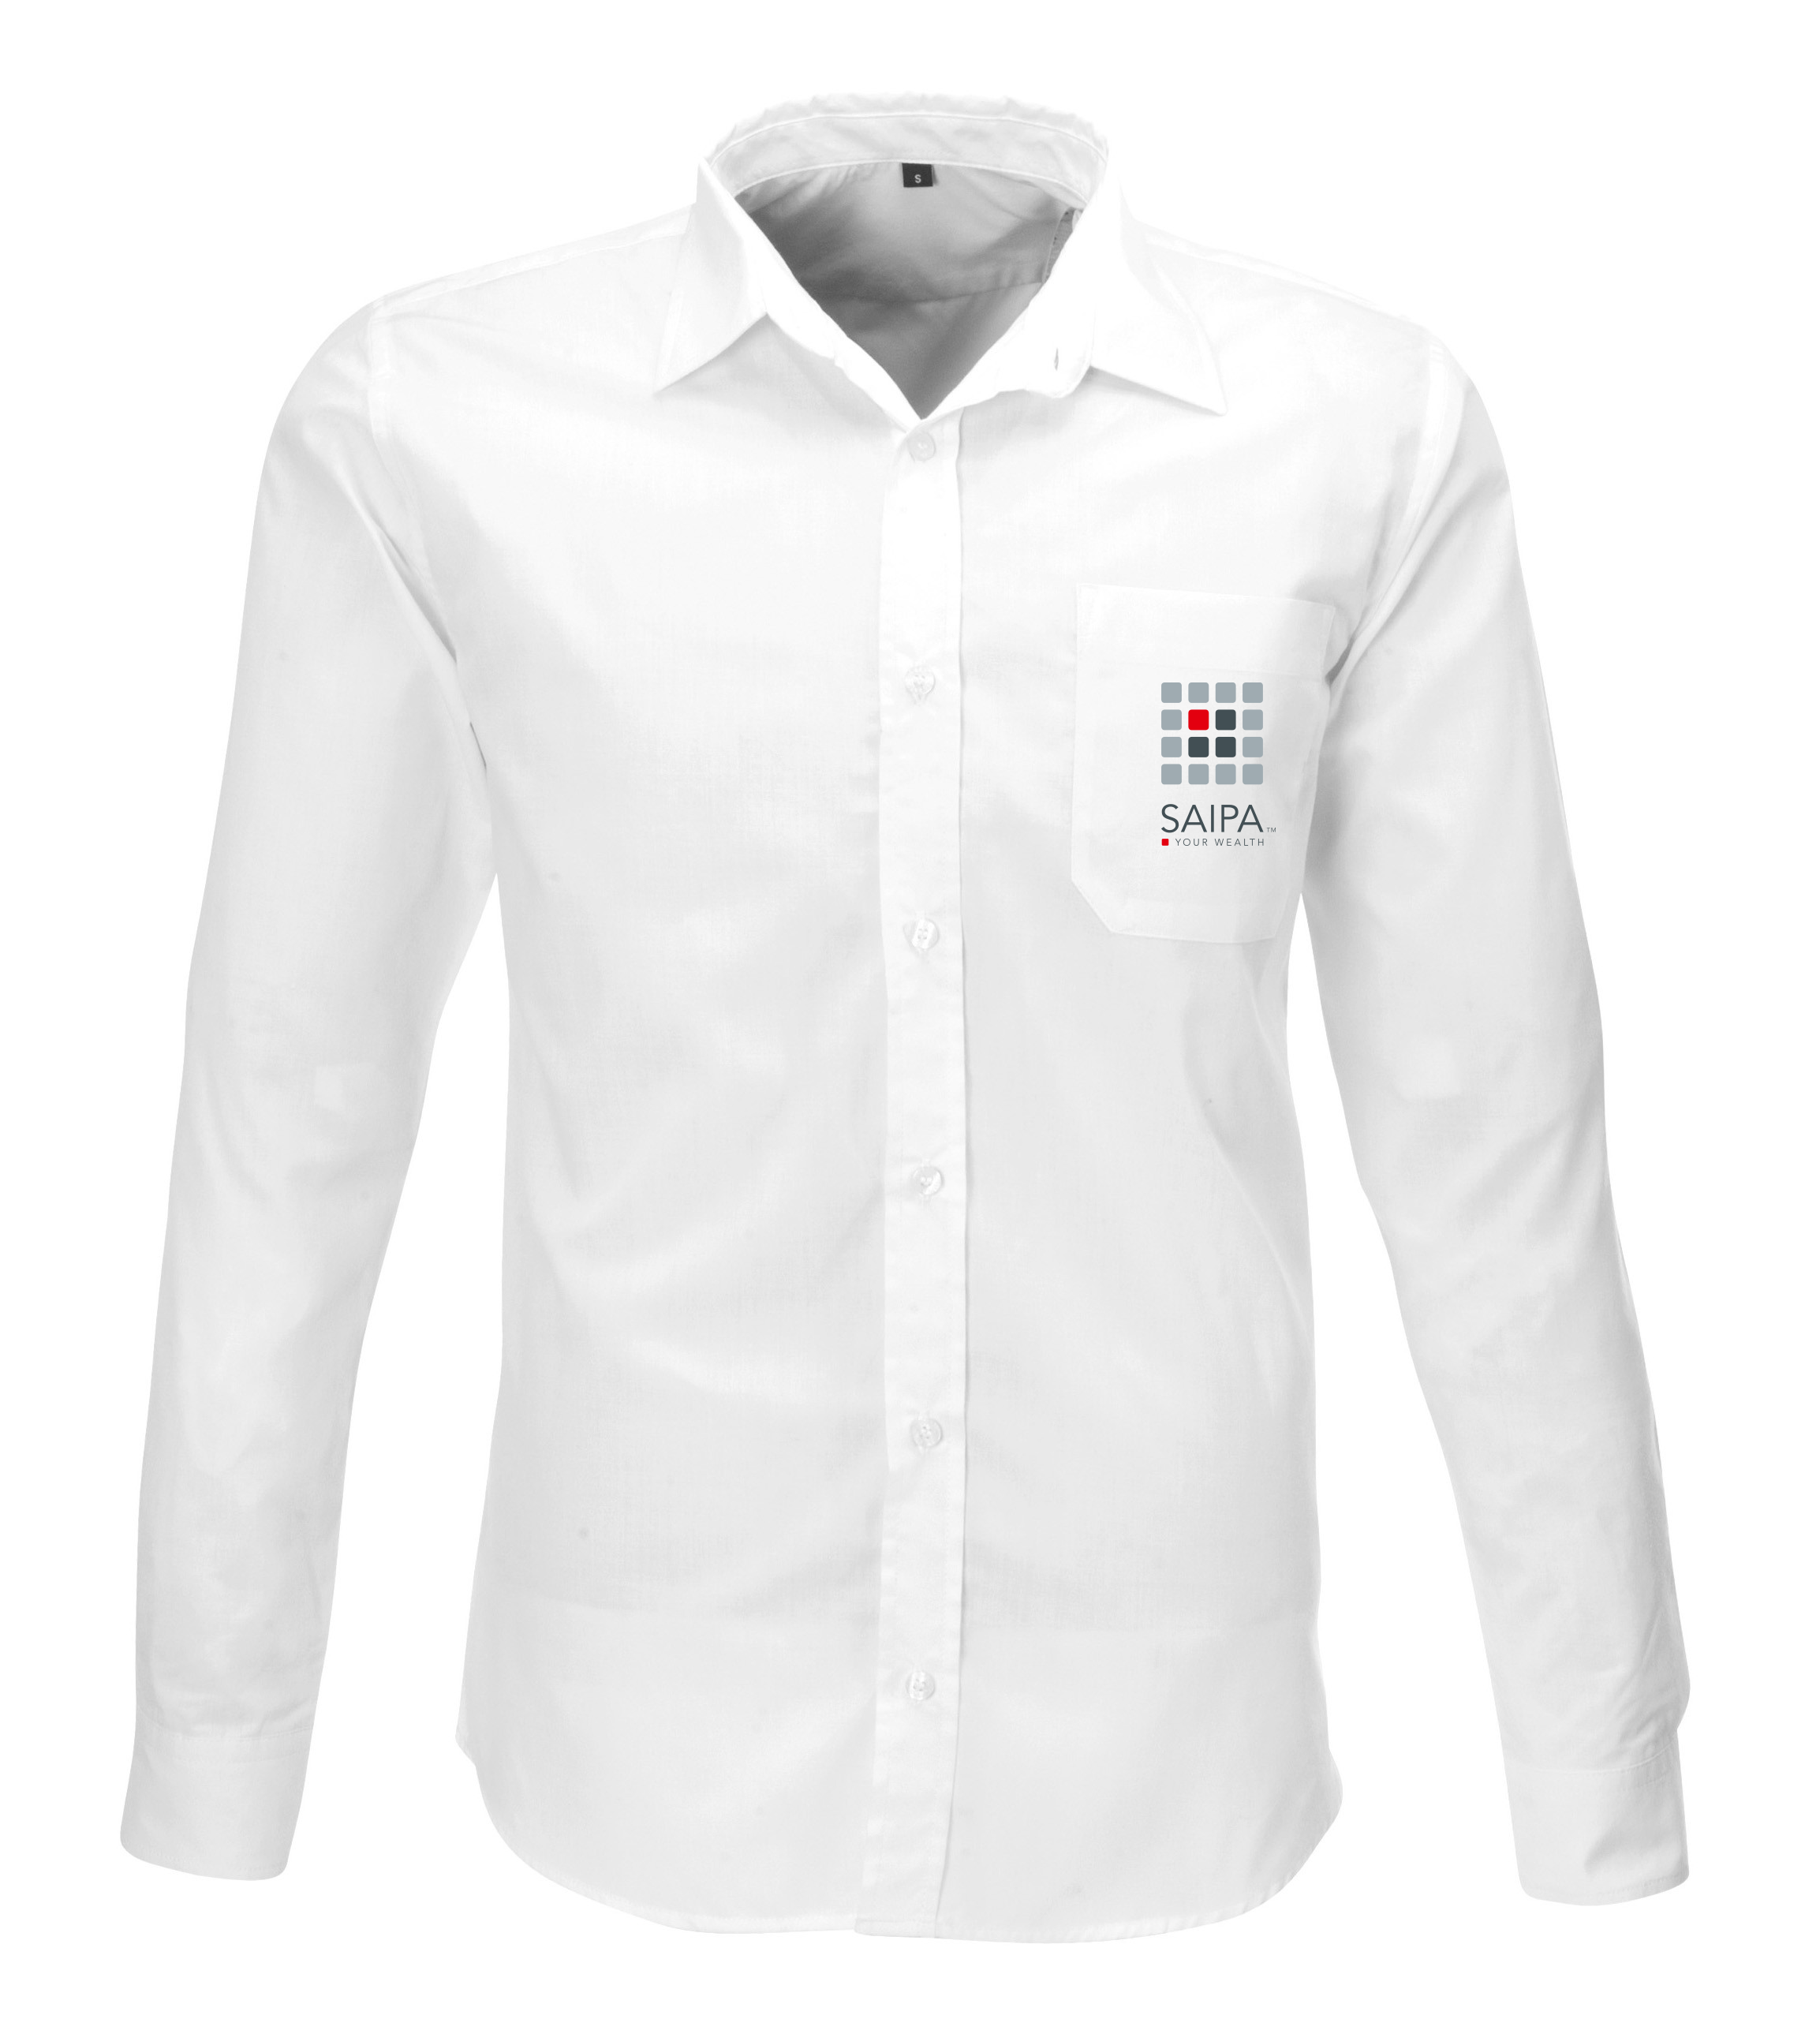 Long Sleeve White Shirt Mens Custom Shirt